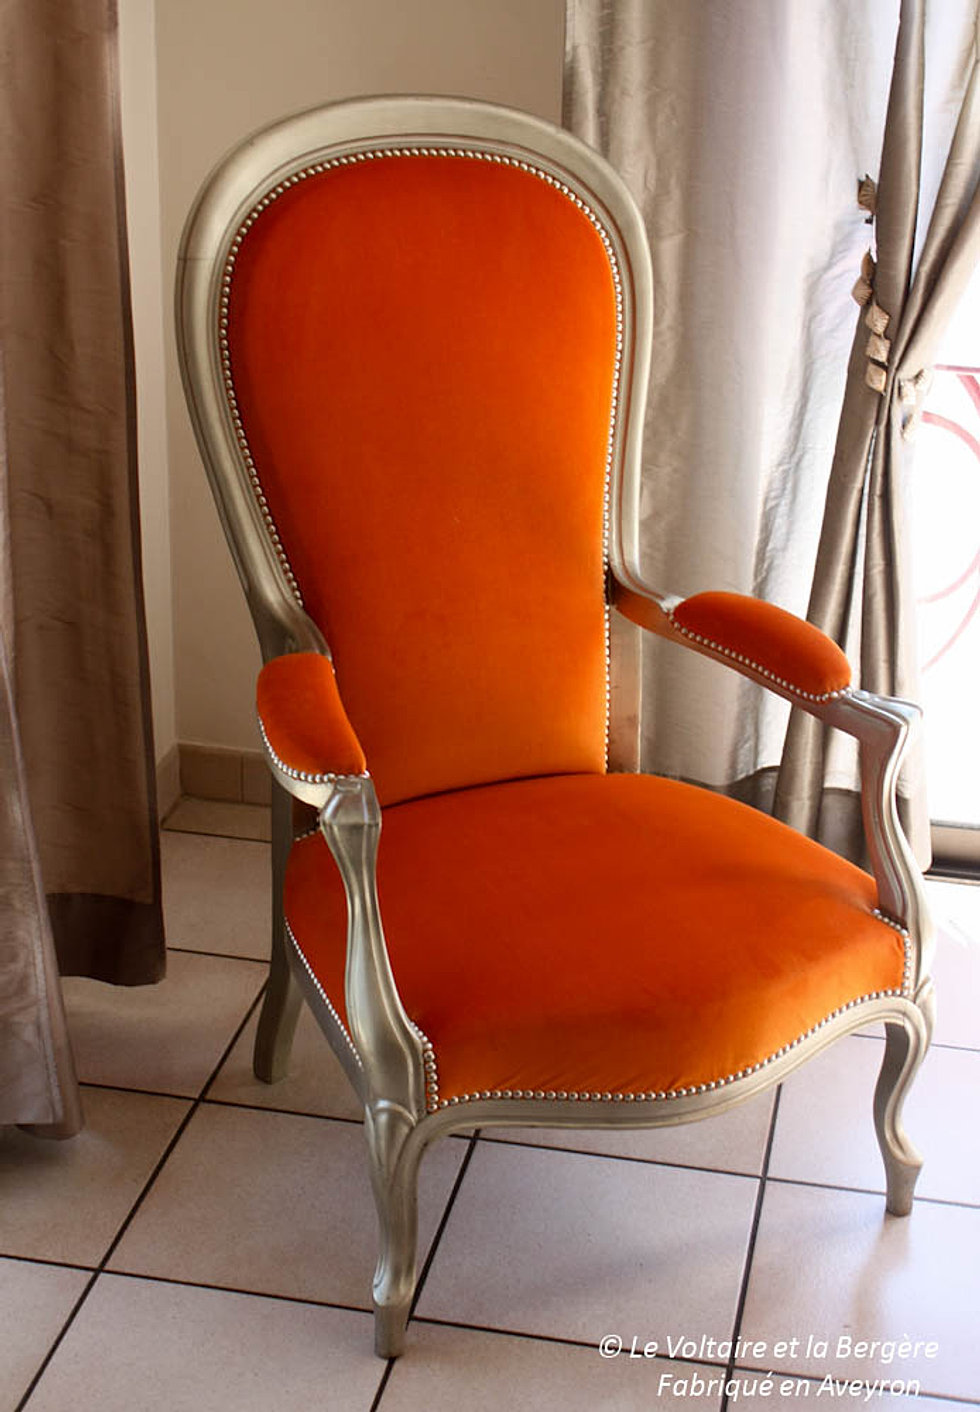 villefranche de rouergue restauration renovation tapissier fauteuils. Black Bedroom Furniture Sets. Home Design Ideas